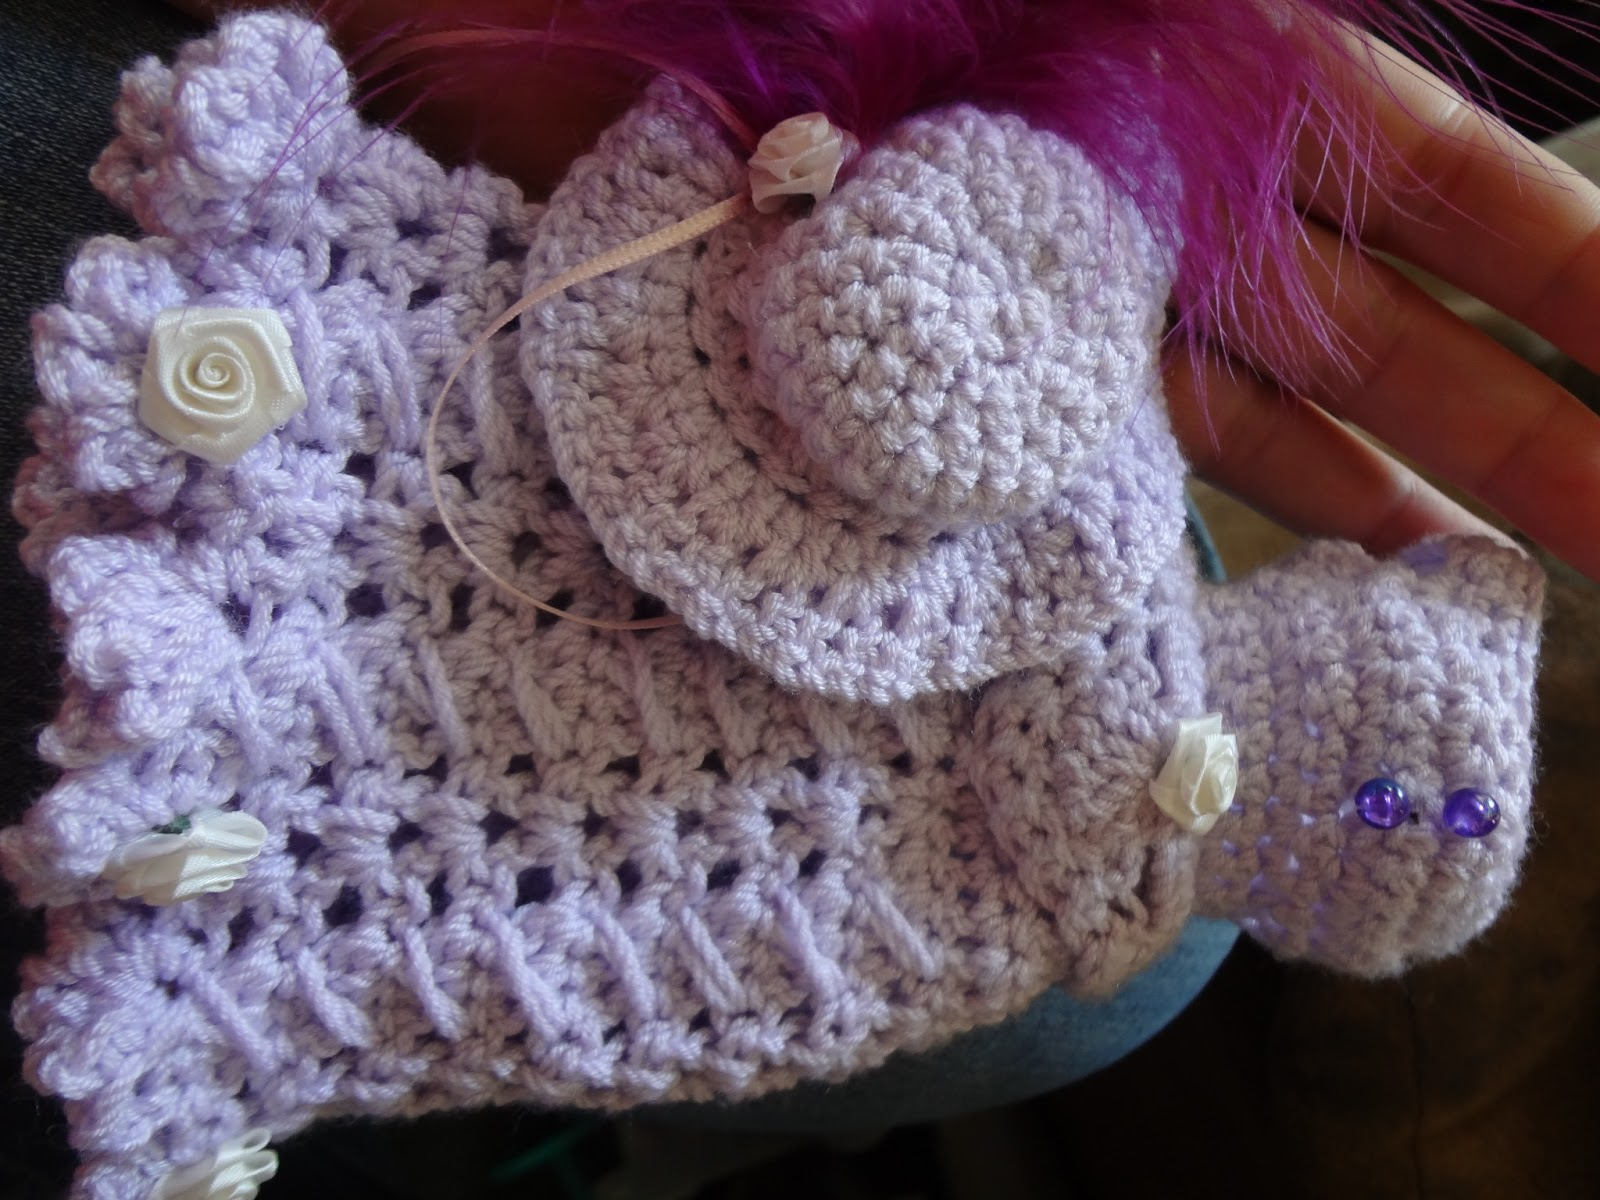 Free Crochet Patterns For Barbie Hats : Niftynnifers Crochet & Crafts: July 2013